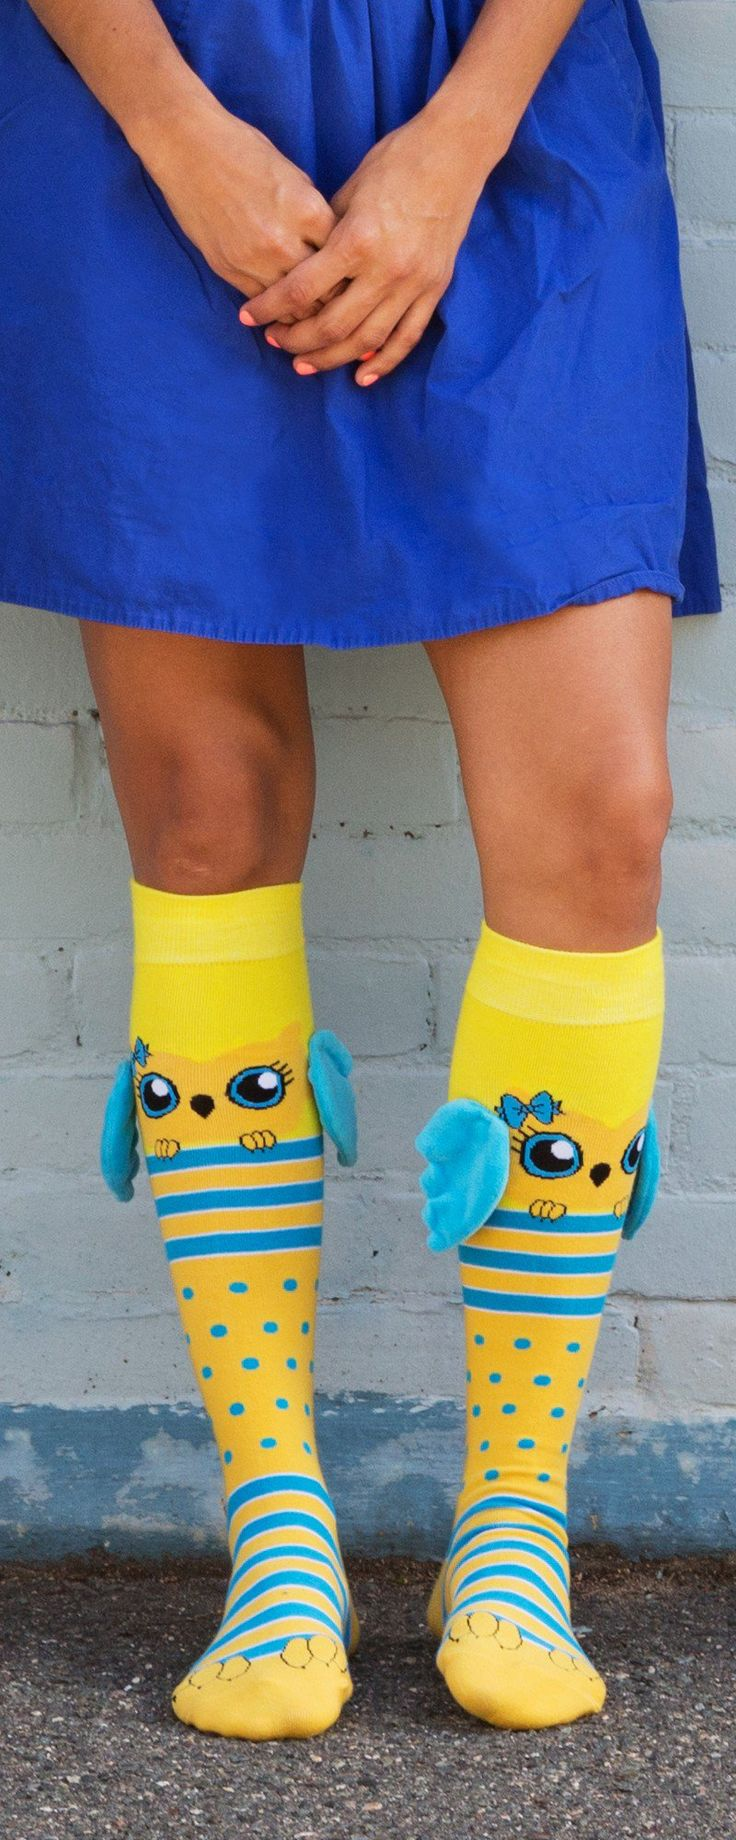 MooshWalks' animal socks with ears, discovered by The Grommet, have wings and ears that flap as you walk. Add colorful personality to your look